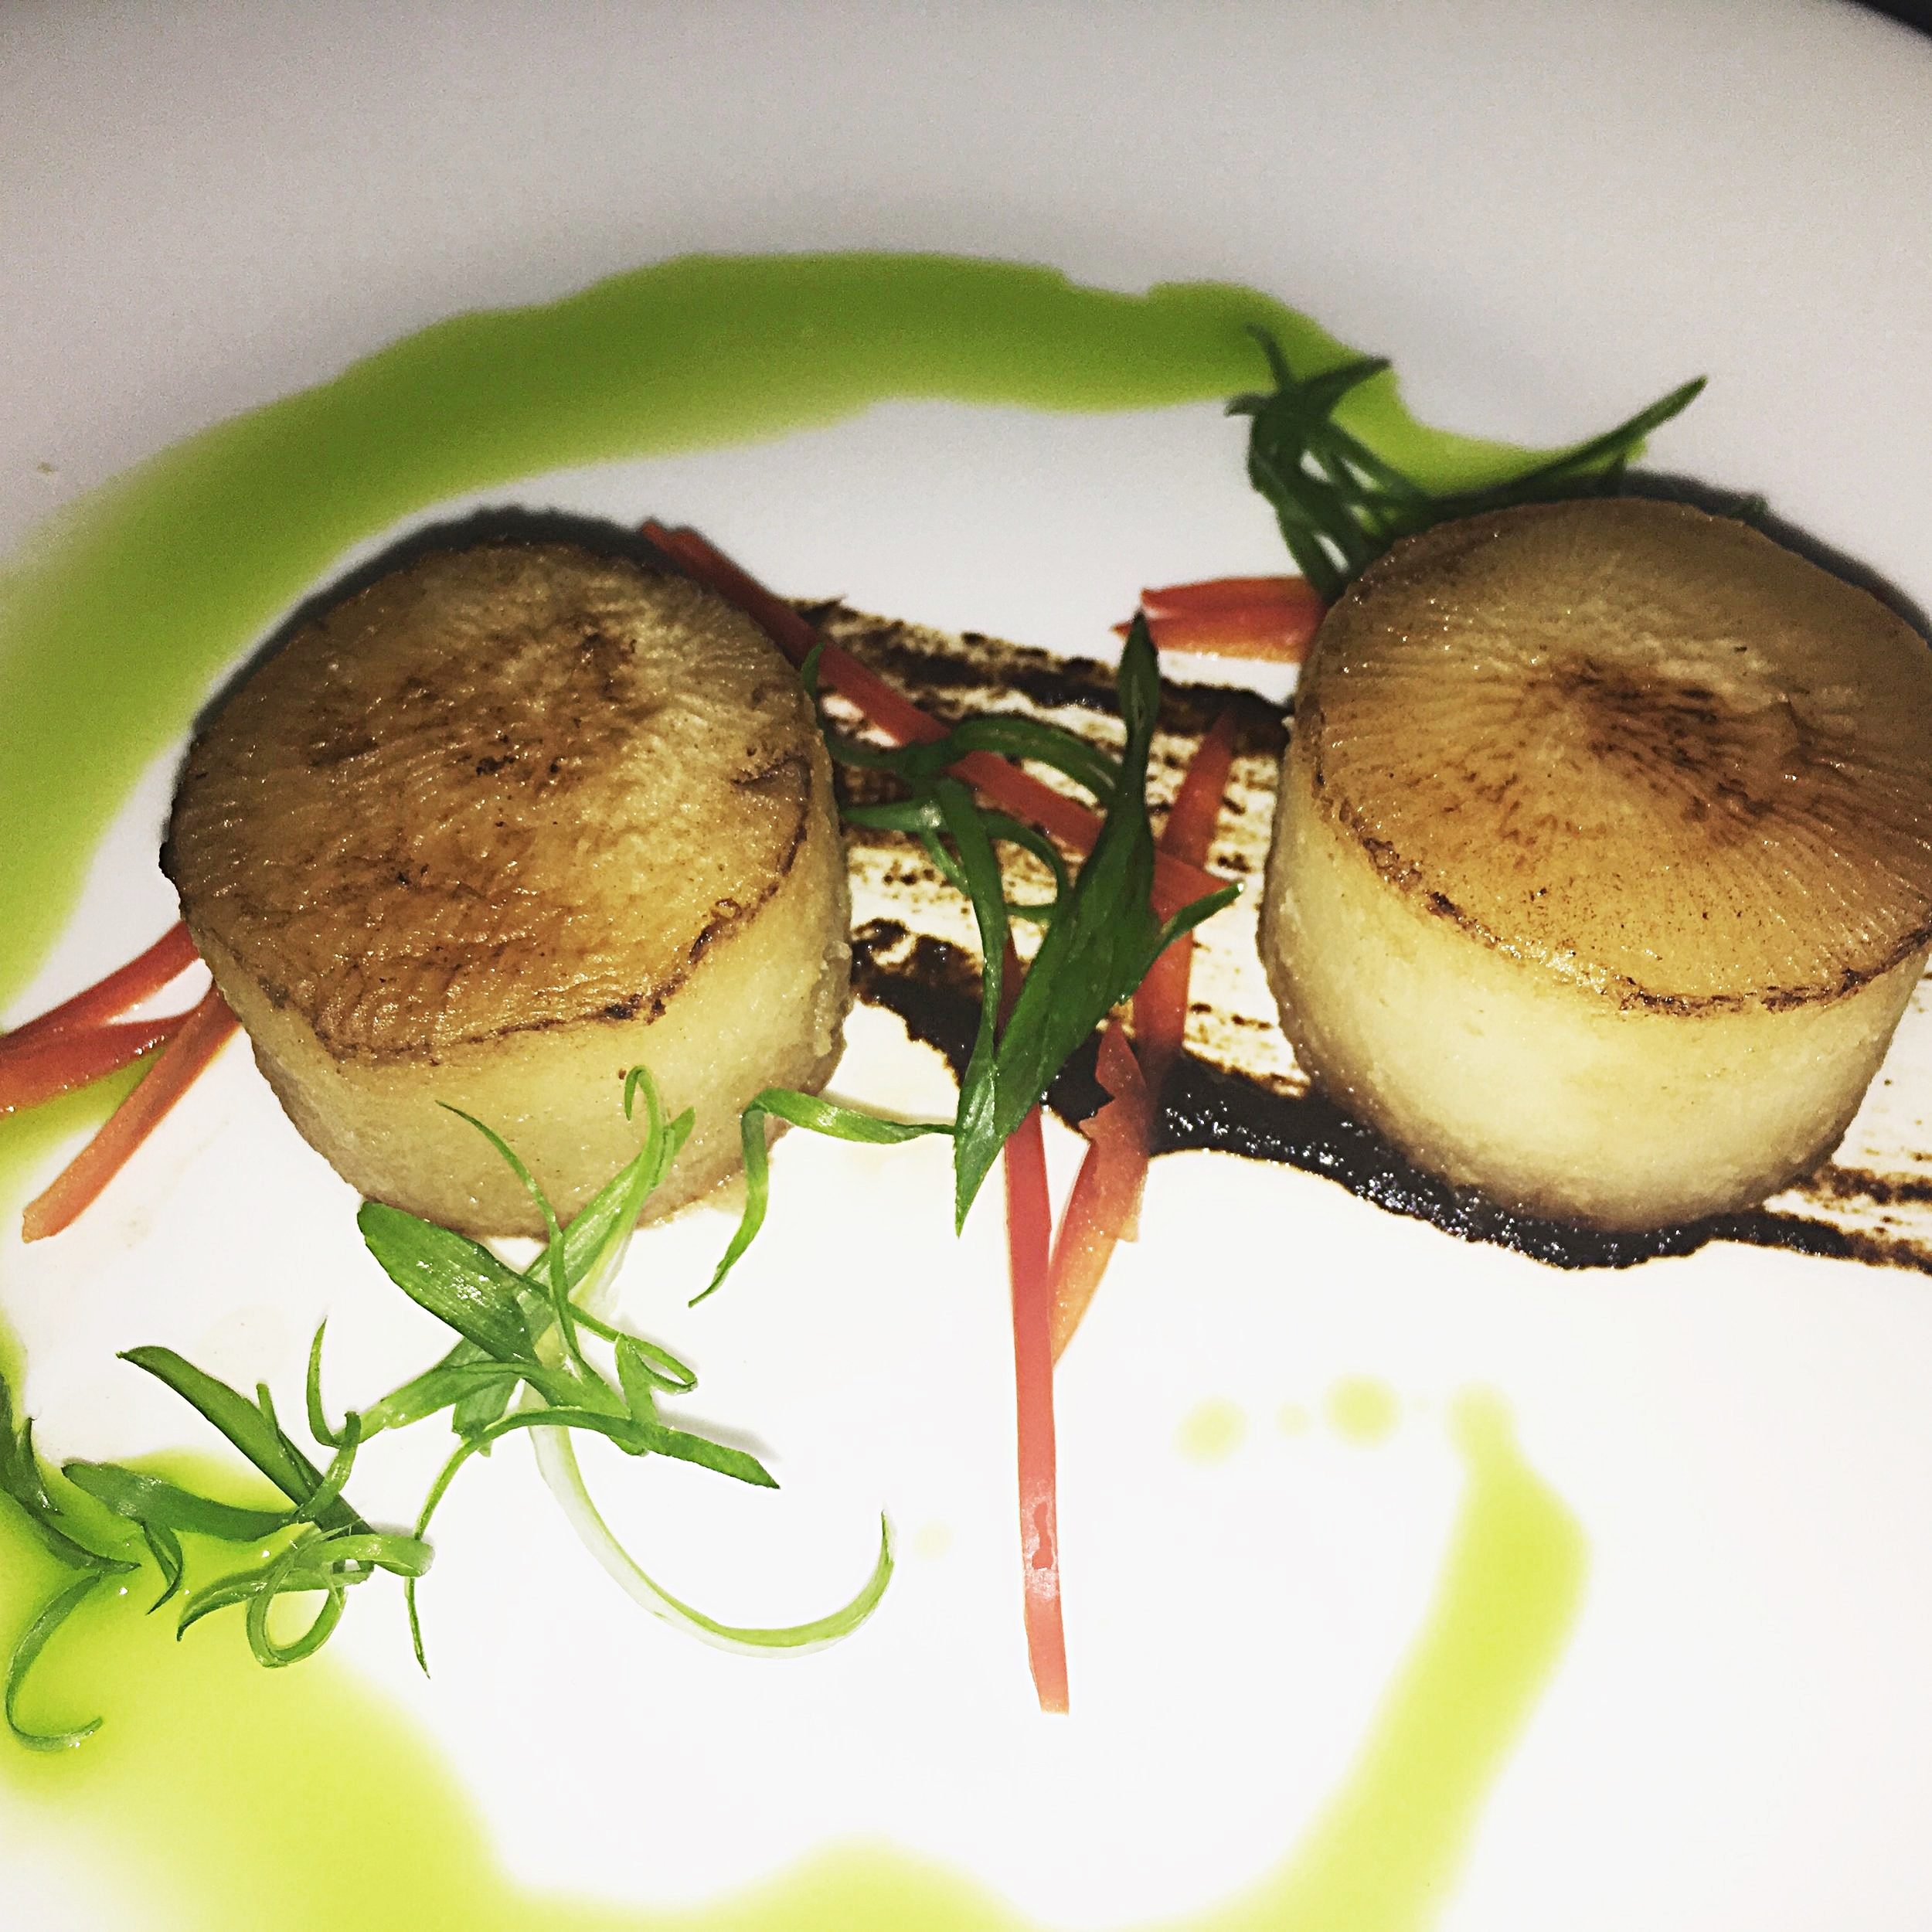 The vegetarian option - Faux Scallops which are actually turnips